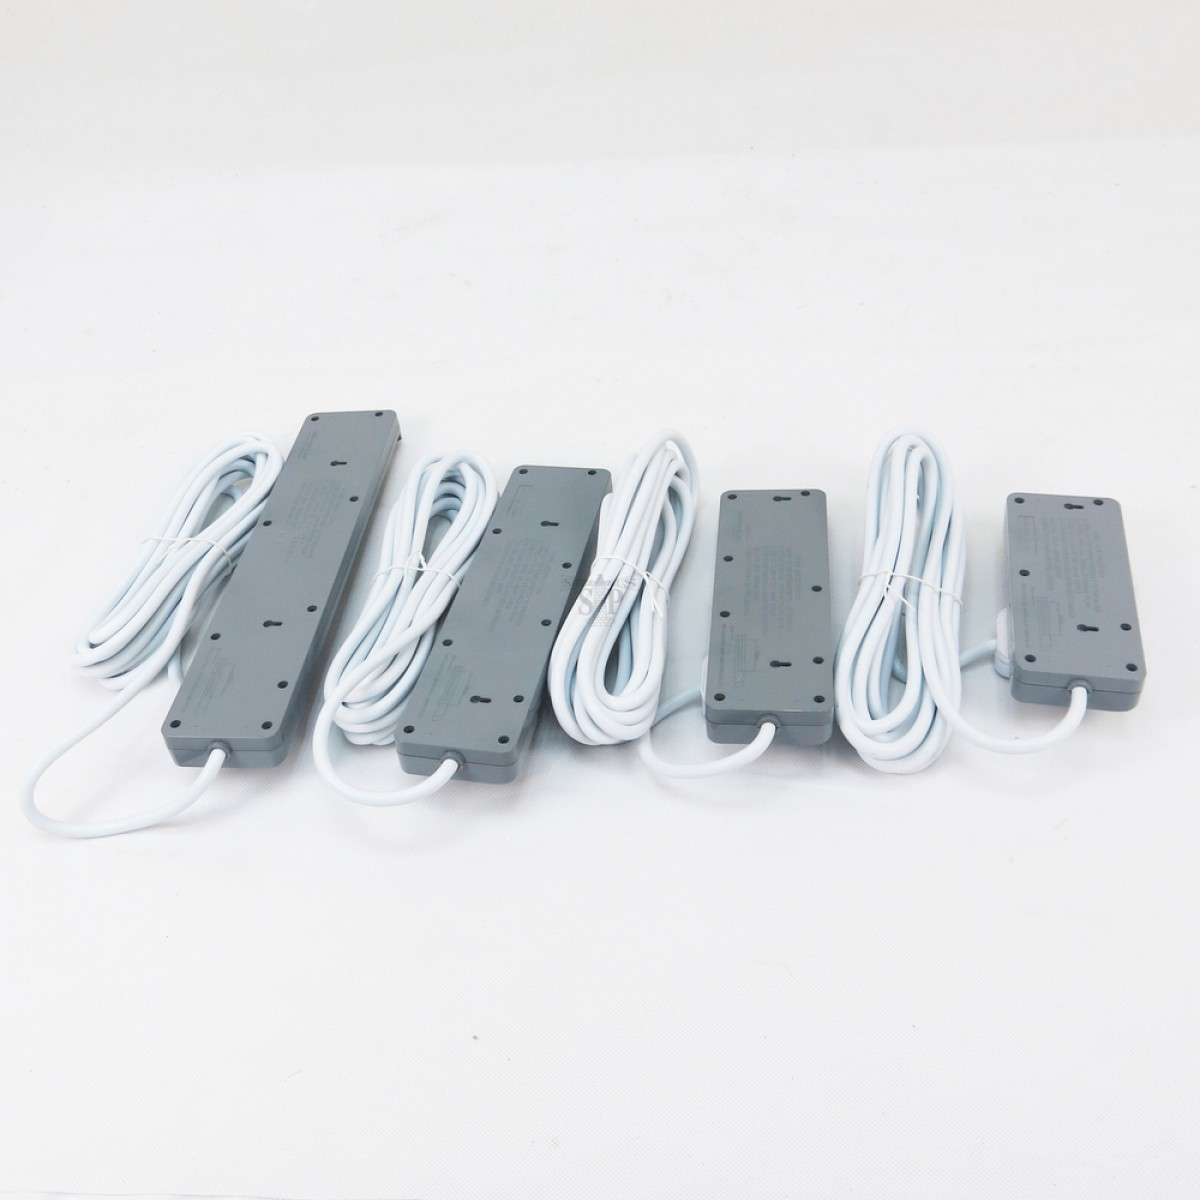 Designer 13A 2 Gang To 5 Gang 5 Meters Power Extension Trailing Socket c/w Surge Protector [SIRIM Approval] (Grey)